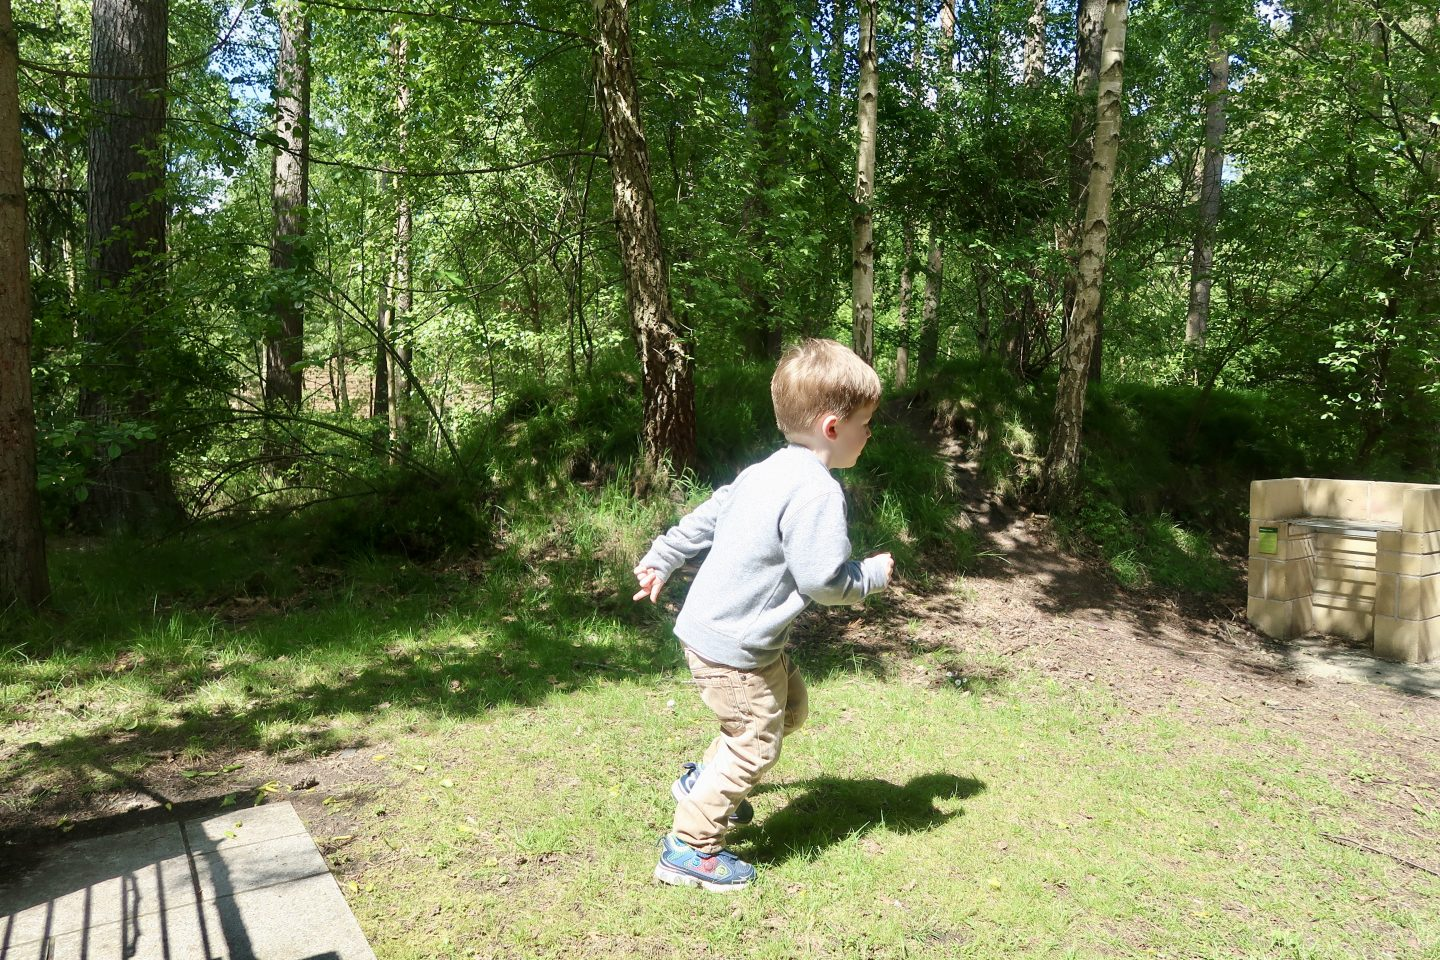 A boy running on grass and amongst trees at Center Parcs